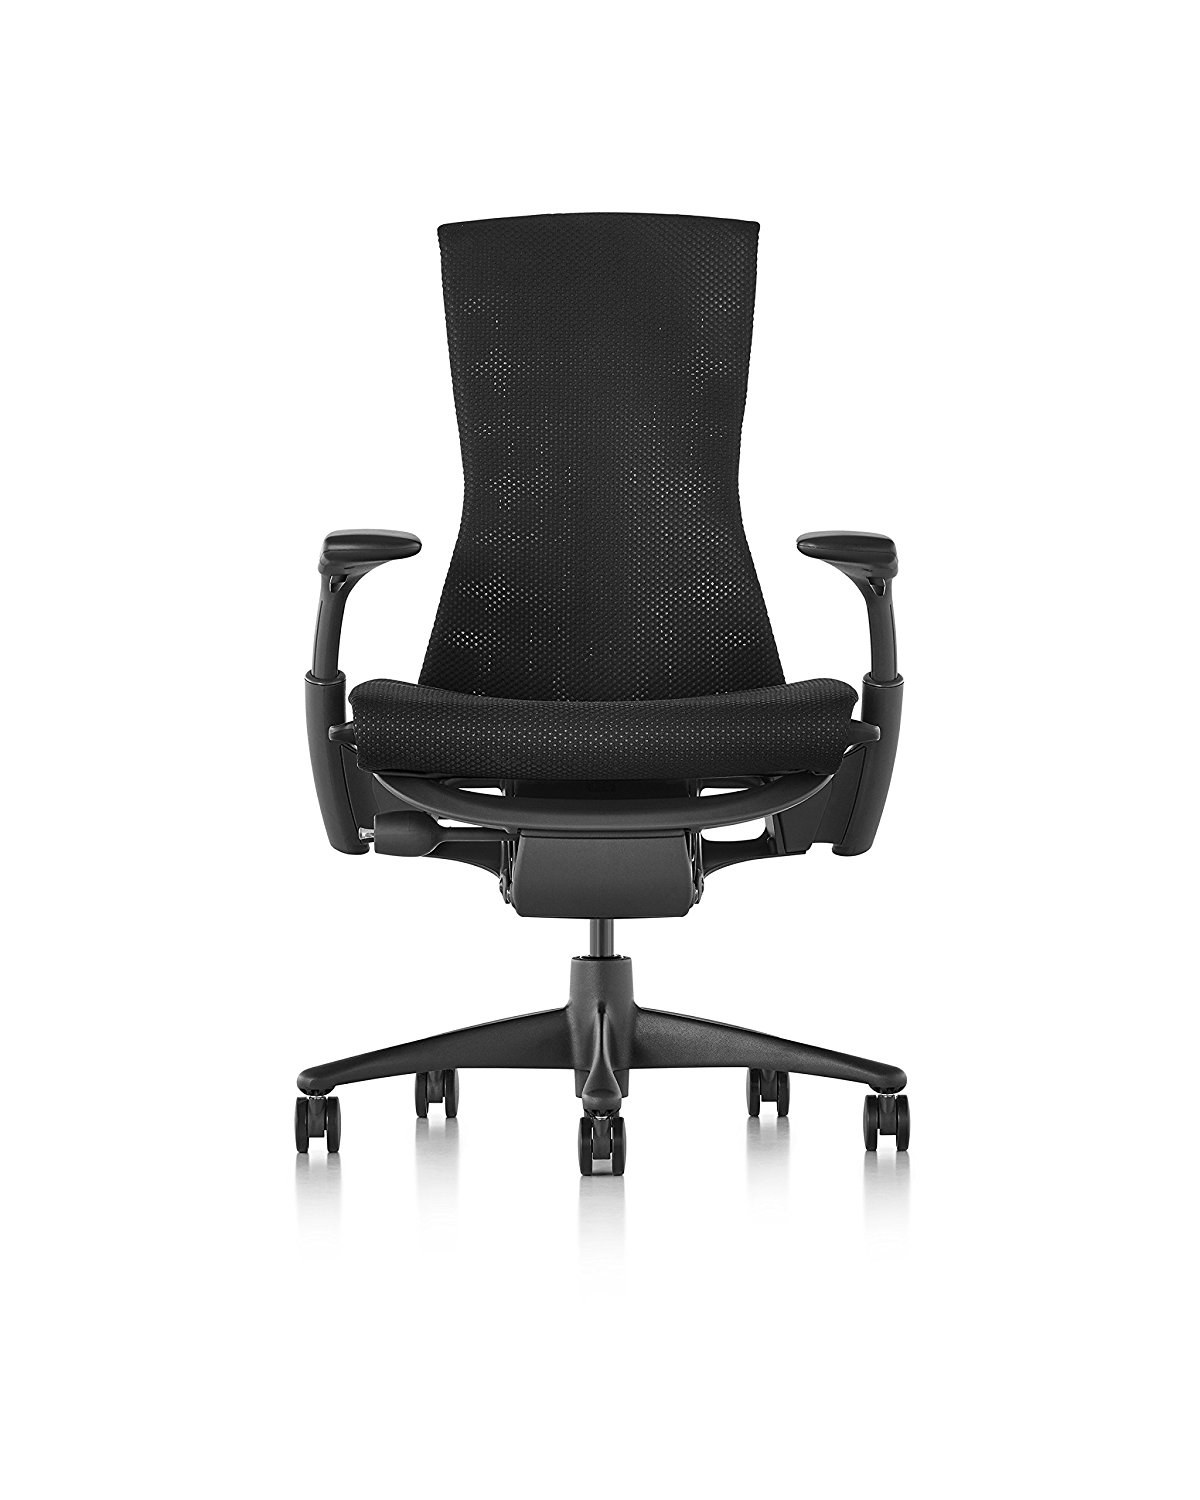 edc5e53c2a2298 Best desk chairs for any office  Herman Miller, Steelcase, and more